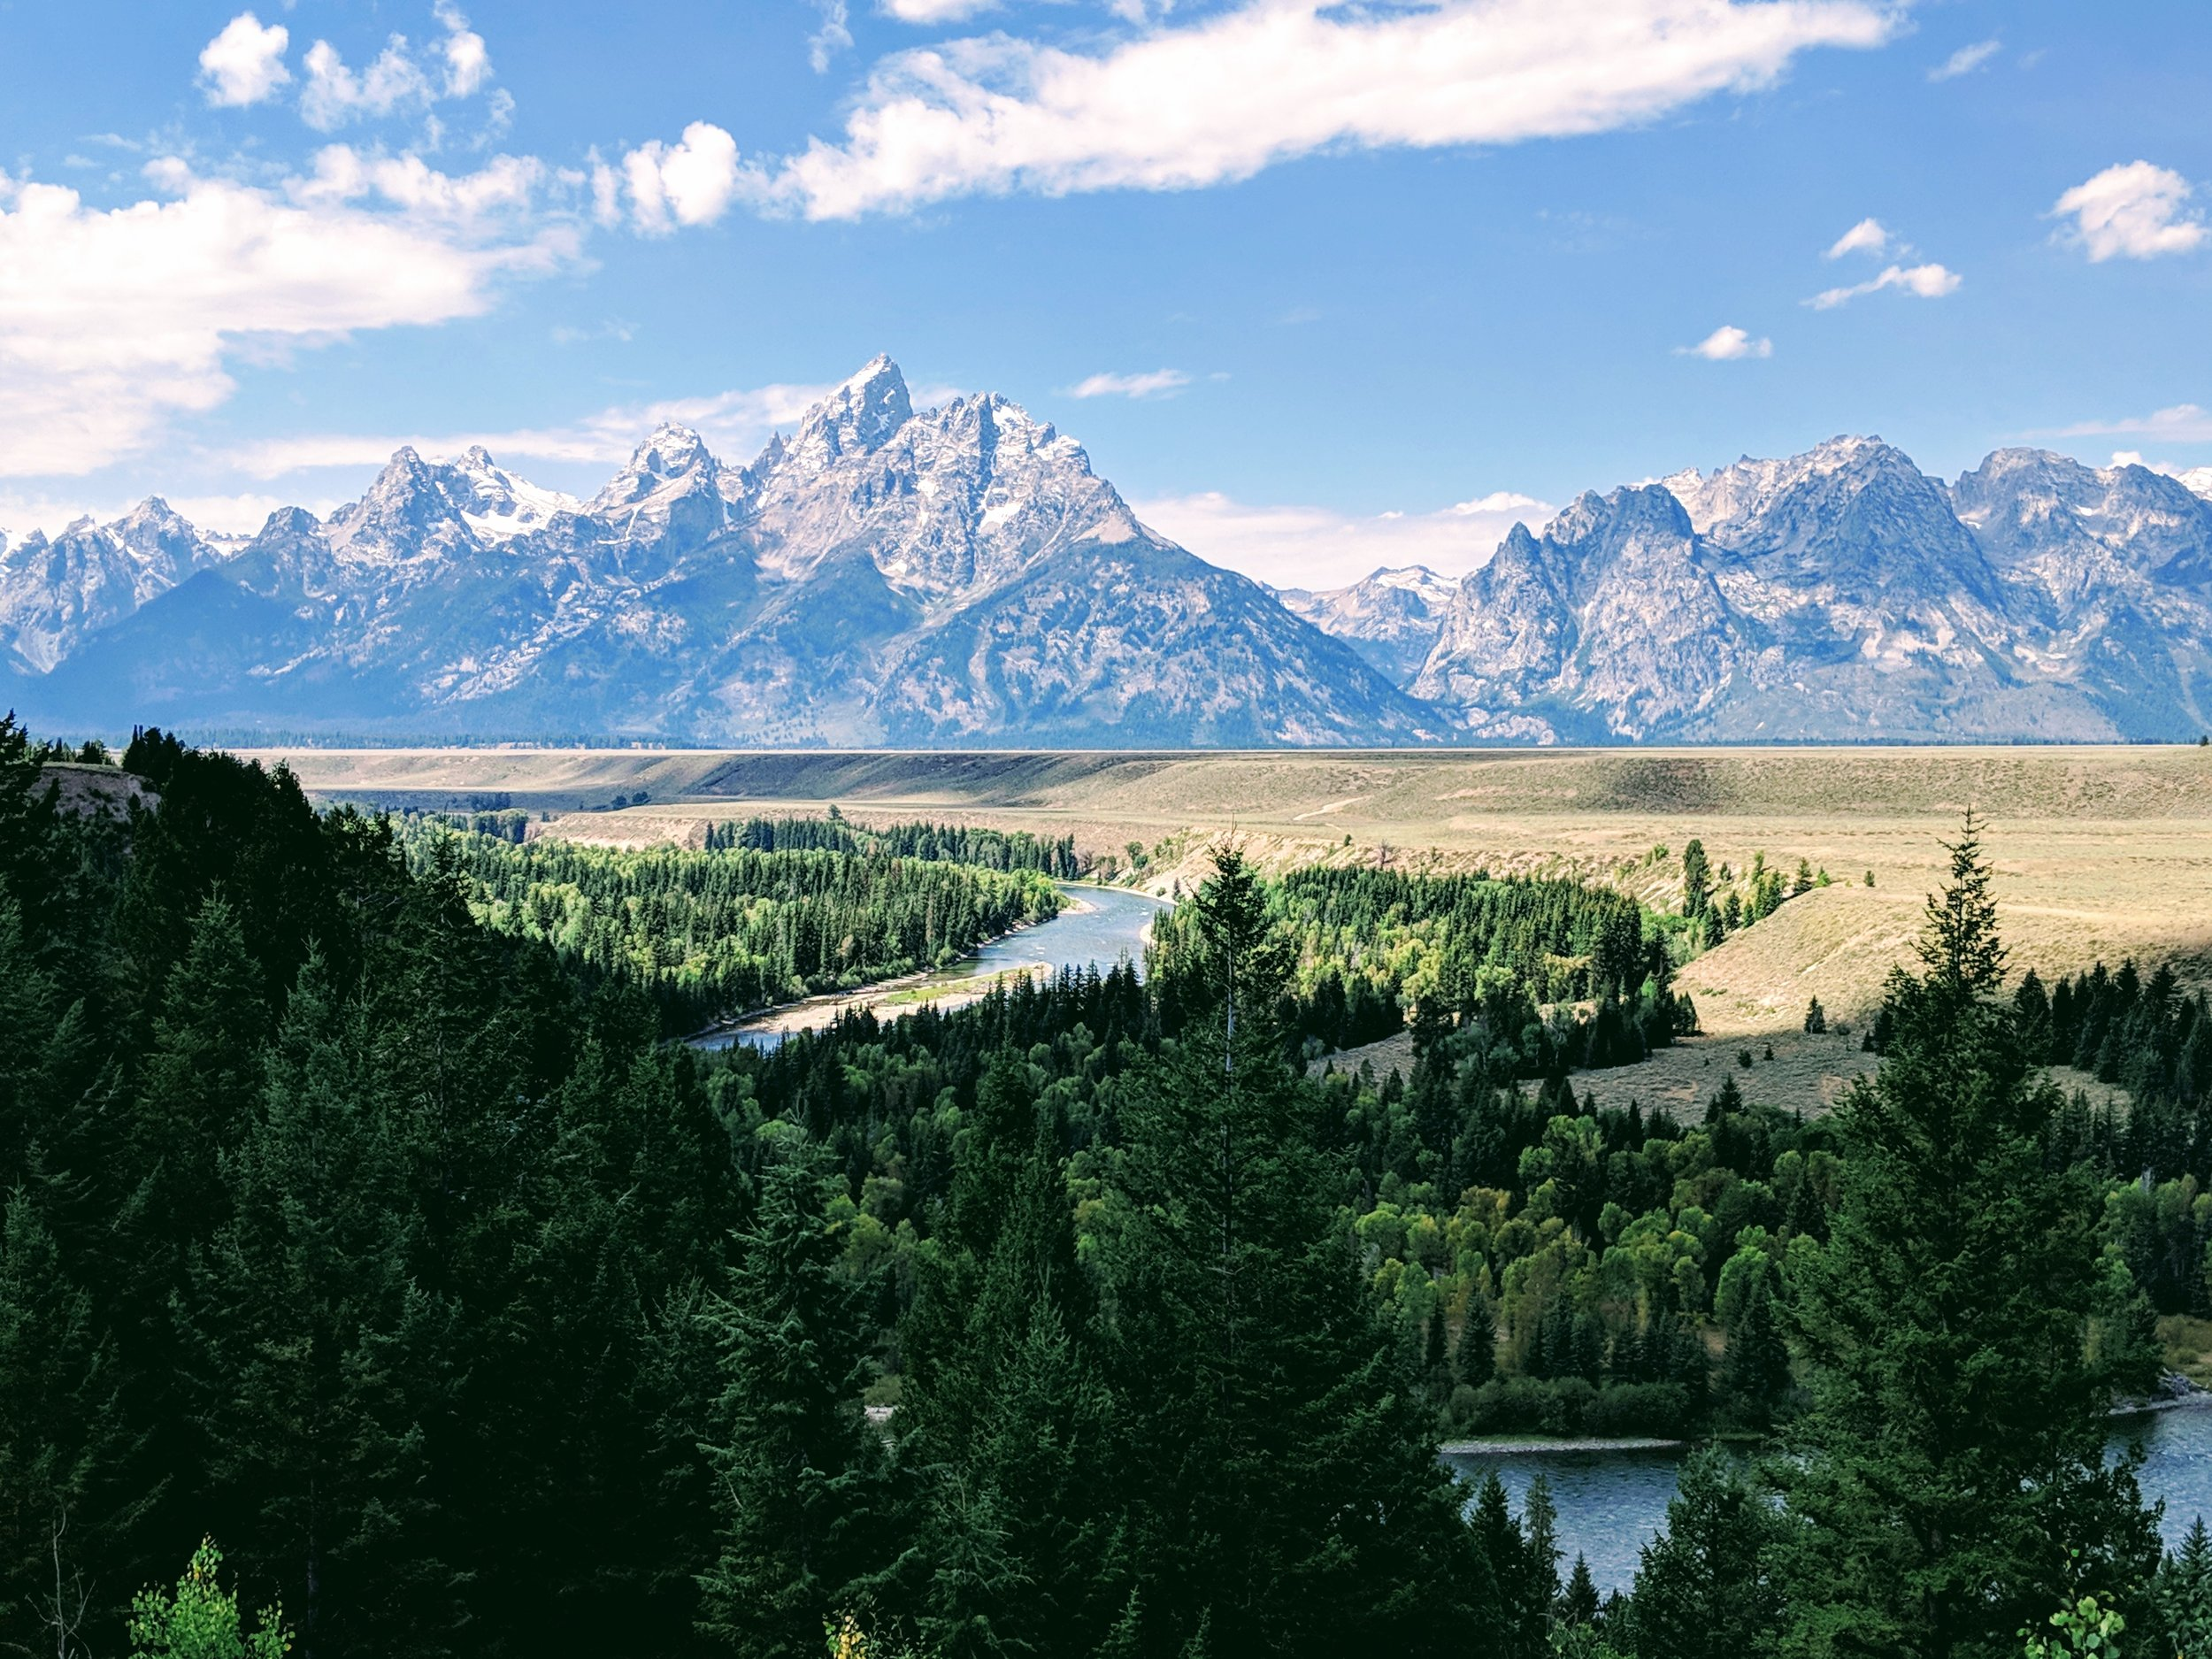 Recovering hard in Grand Teton National Park - Jackson Hole, Wyoming